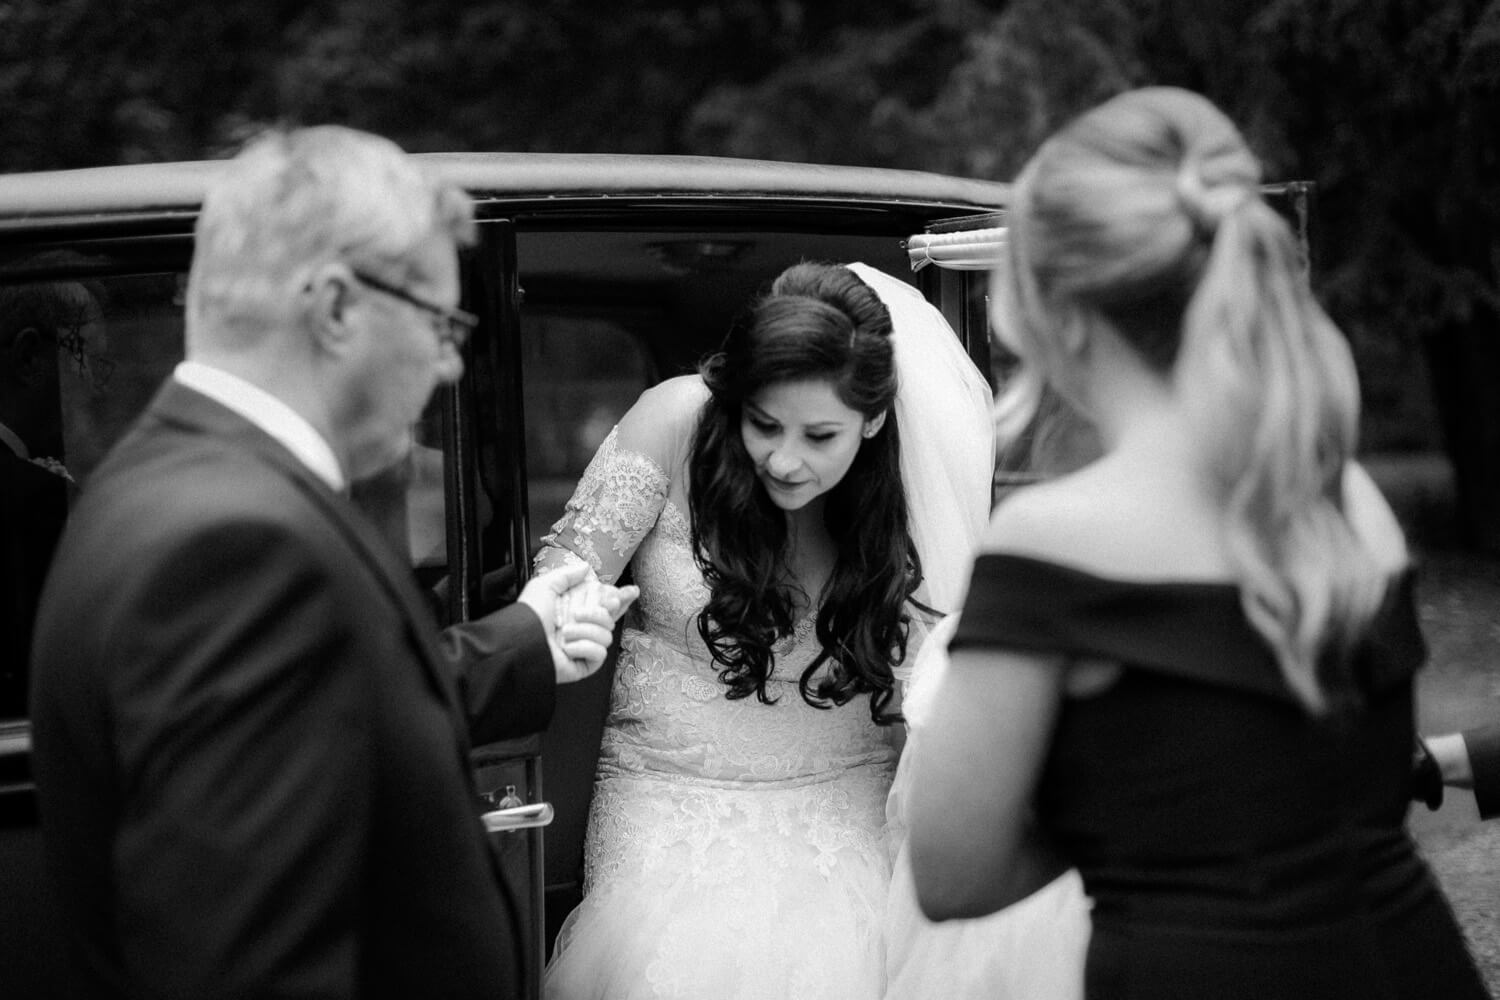 COMBERMERE ABBEY WEDDING PHOTOGRAPHY: CHIC CHESHIRE WEDDING | Combermere Abbey | combermere abbey